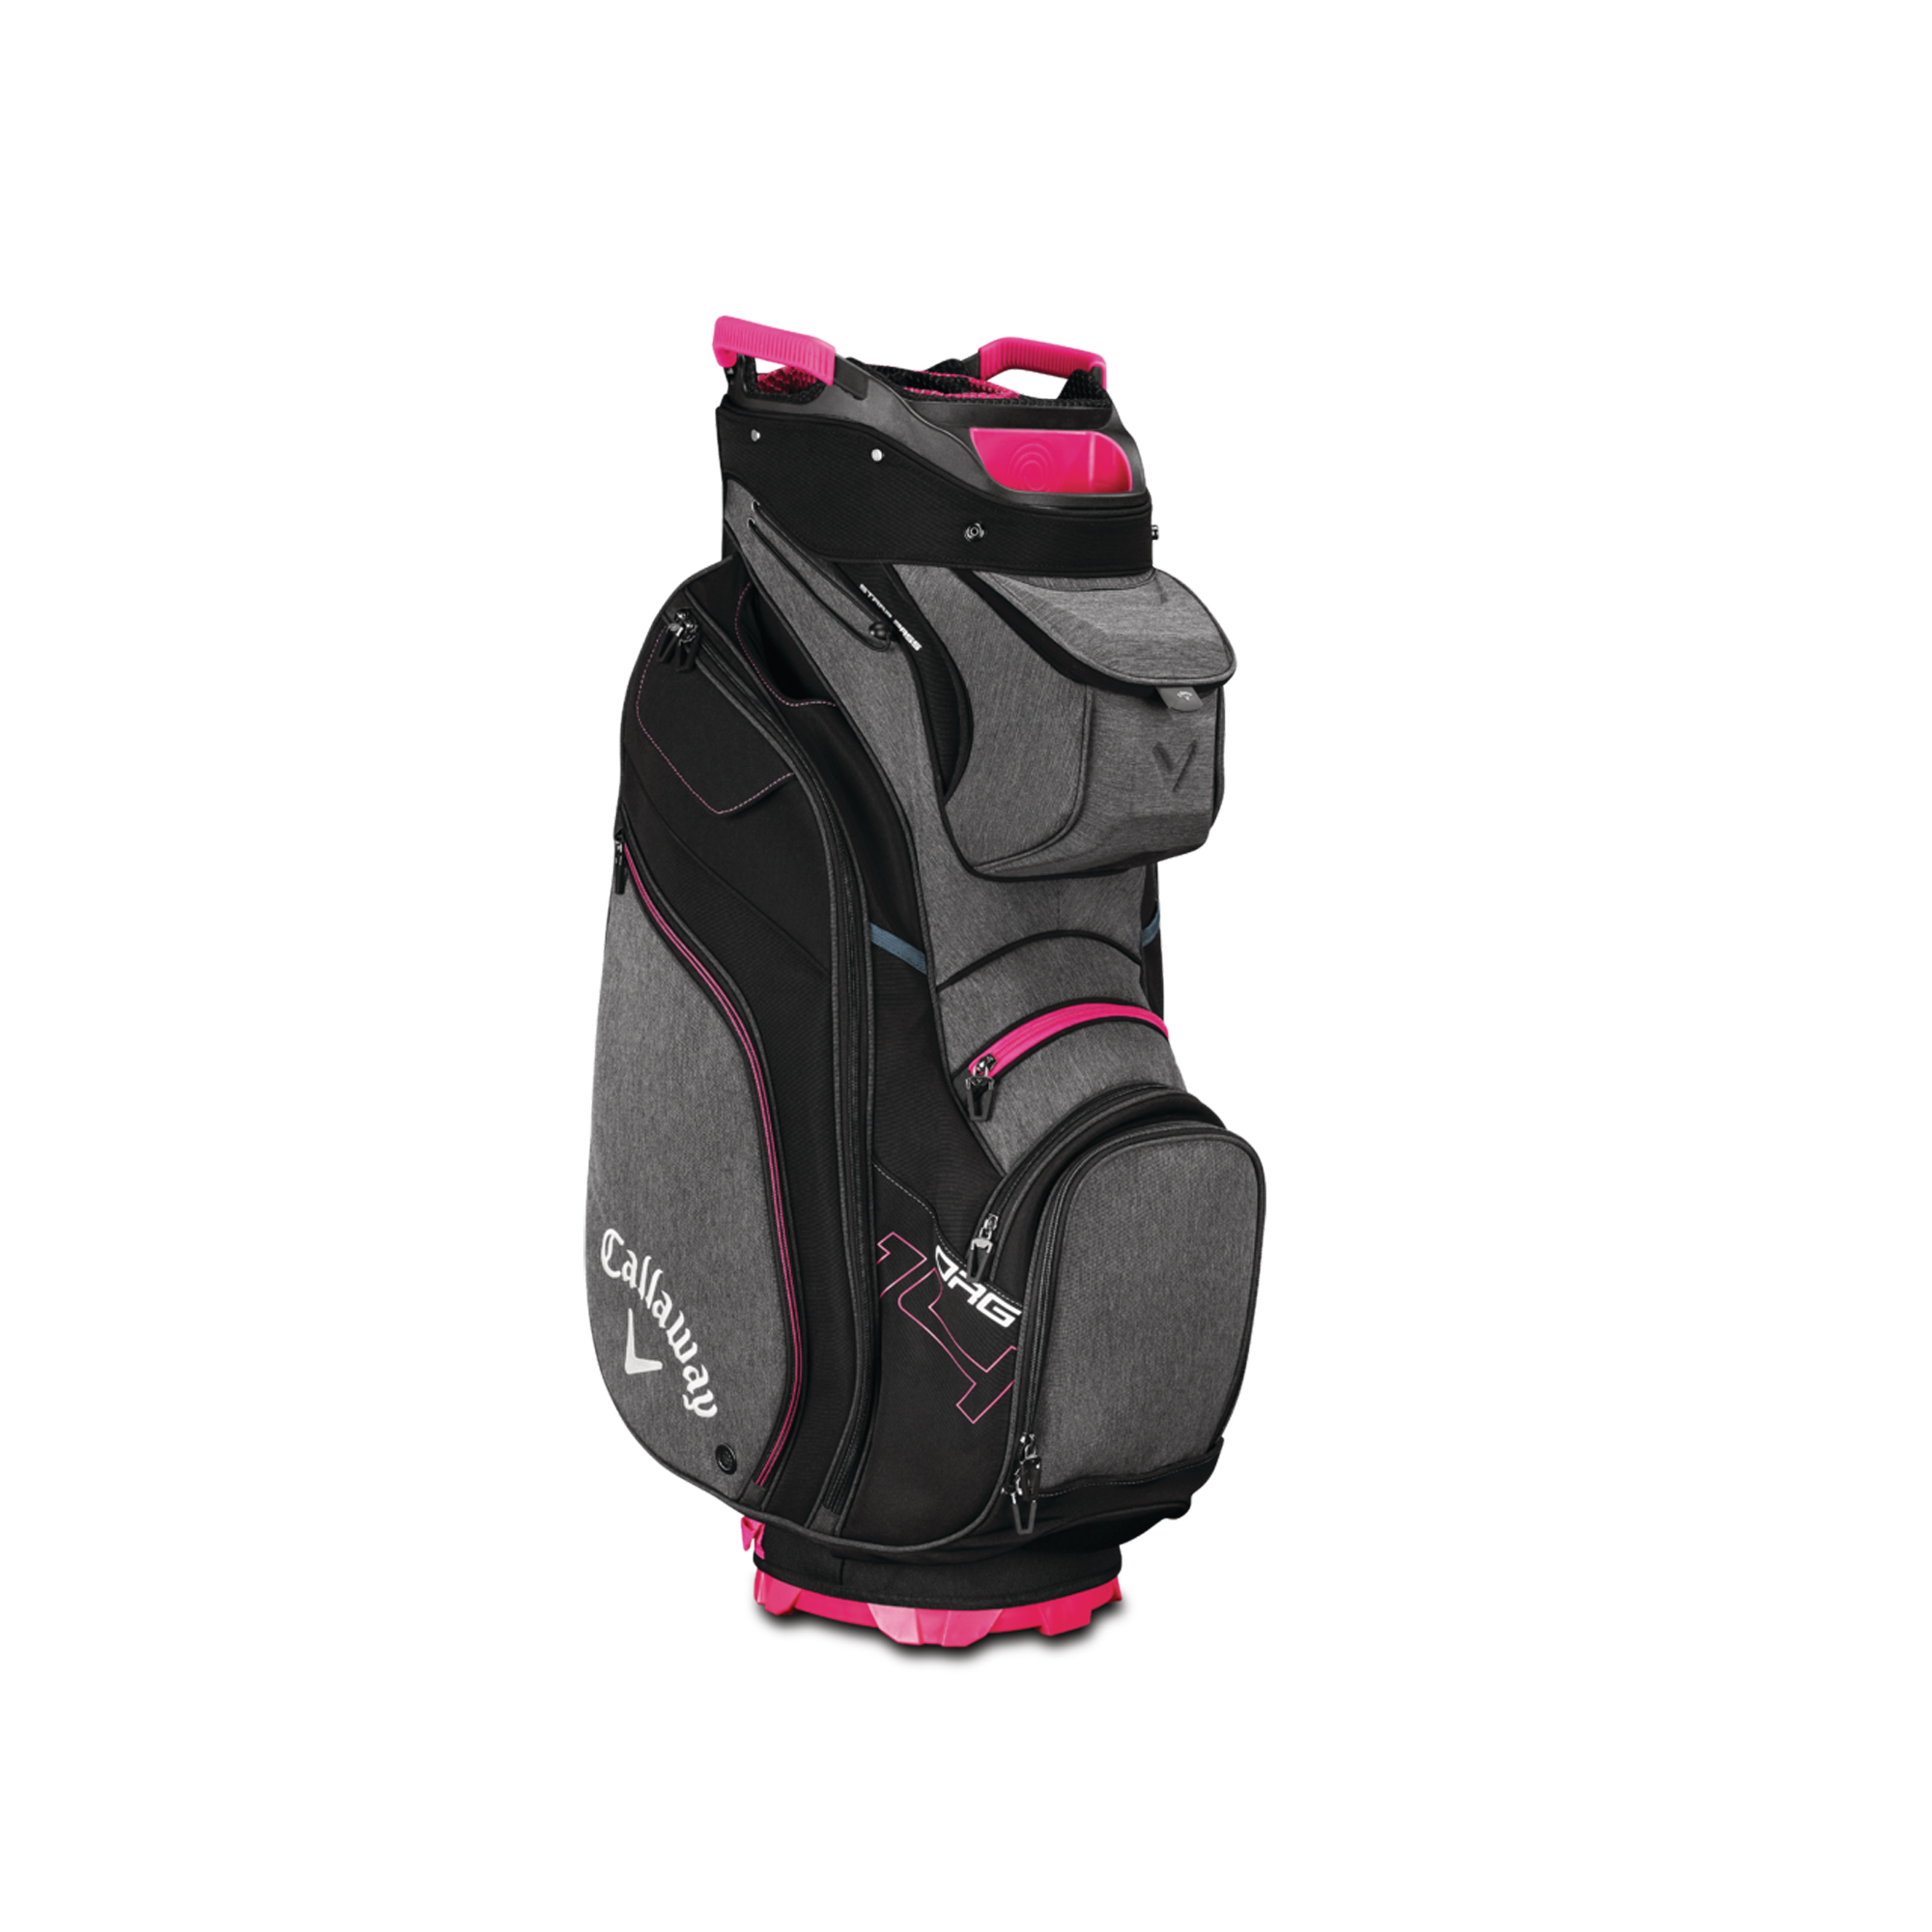 Callaway ORG 14 Cart Golf Bag Titanium/Black/Pink